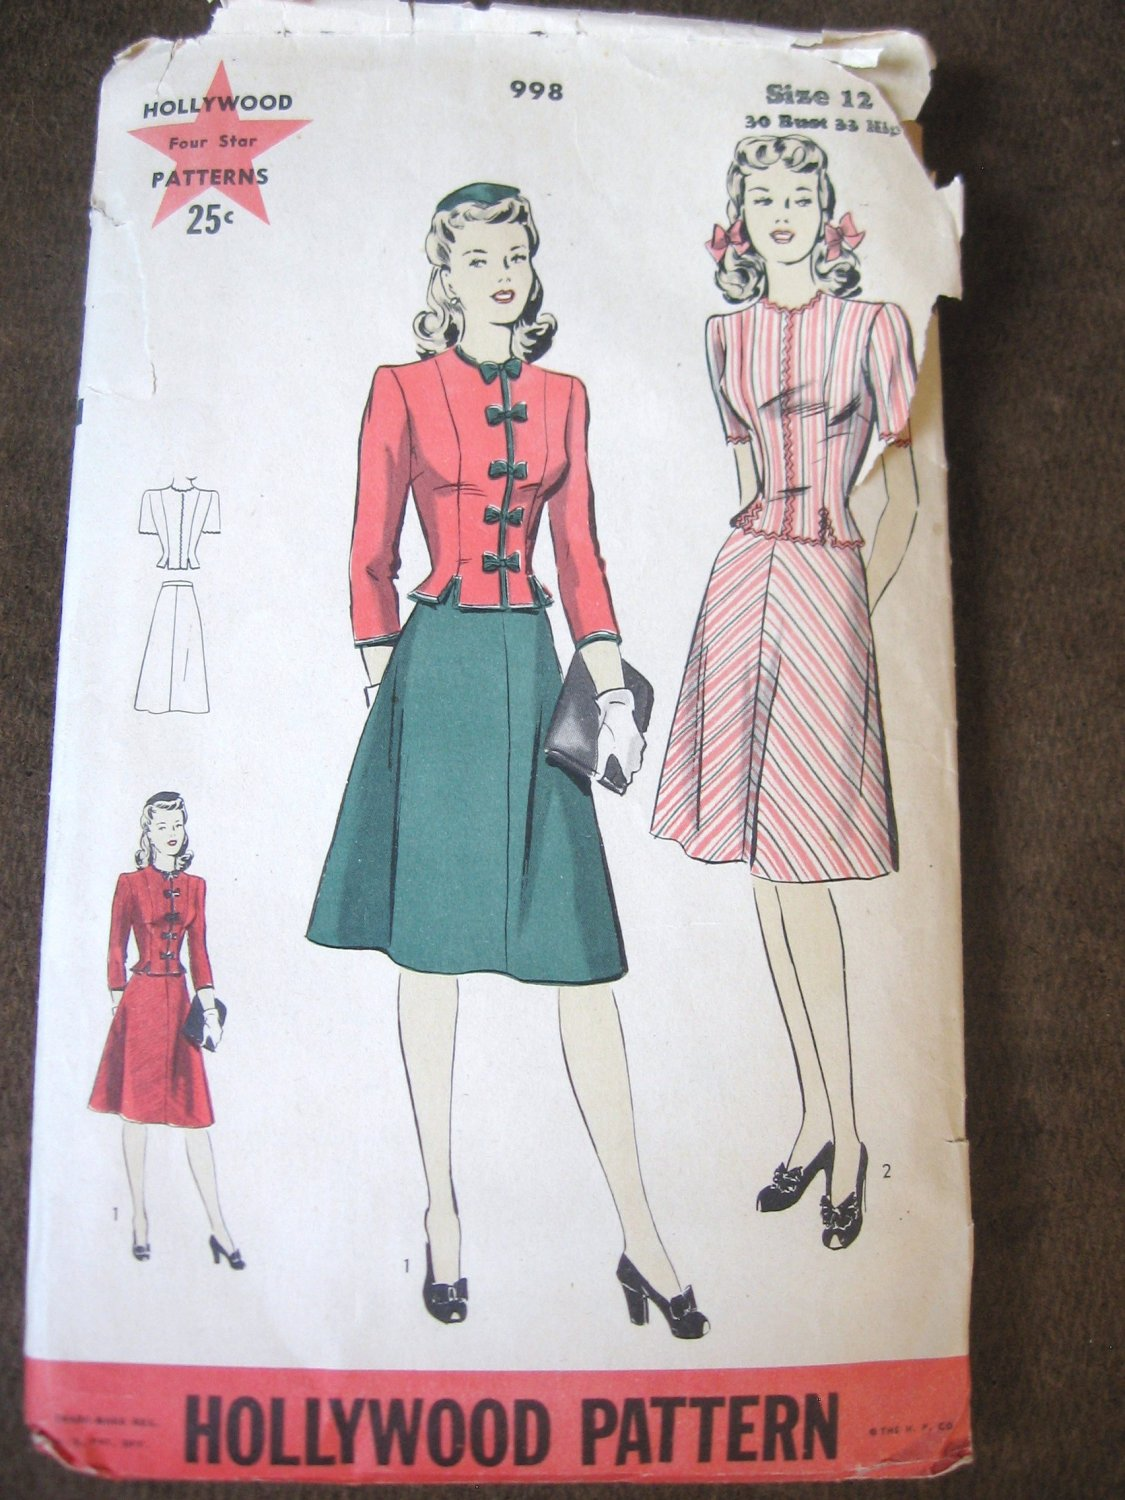 Vintage 40's 2 Piece Dress Sewing Pattern Hollywood 998 size 12